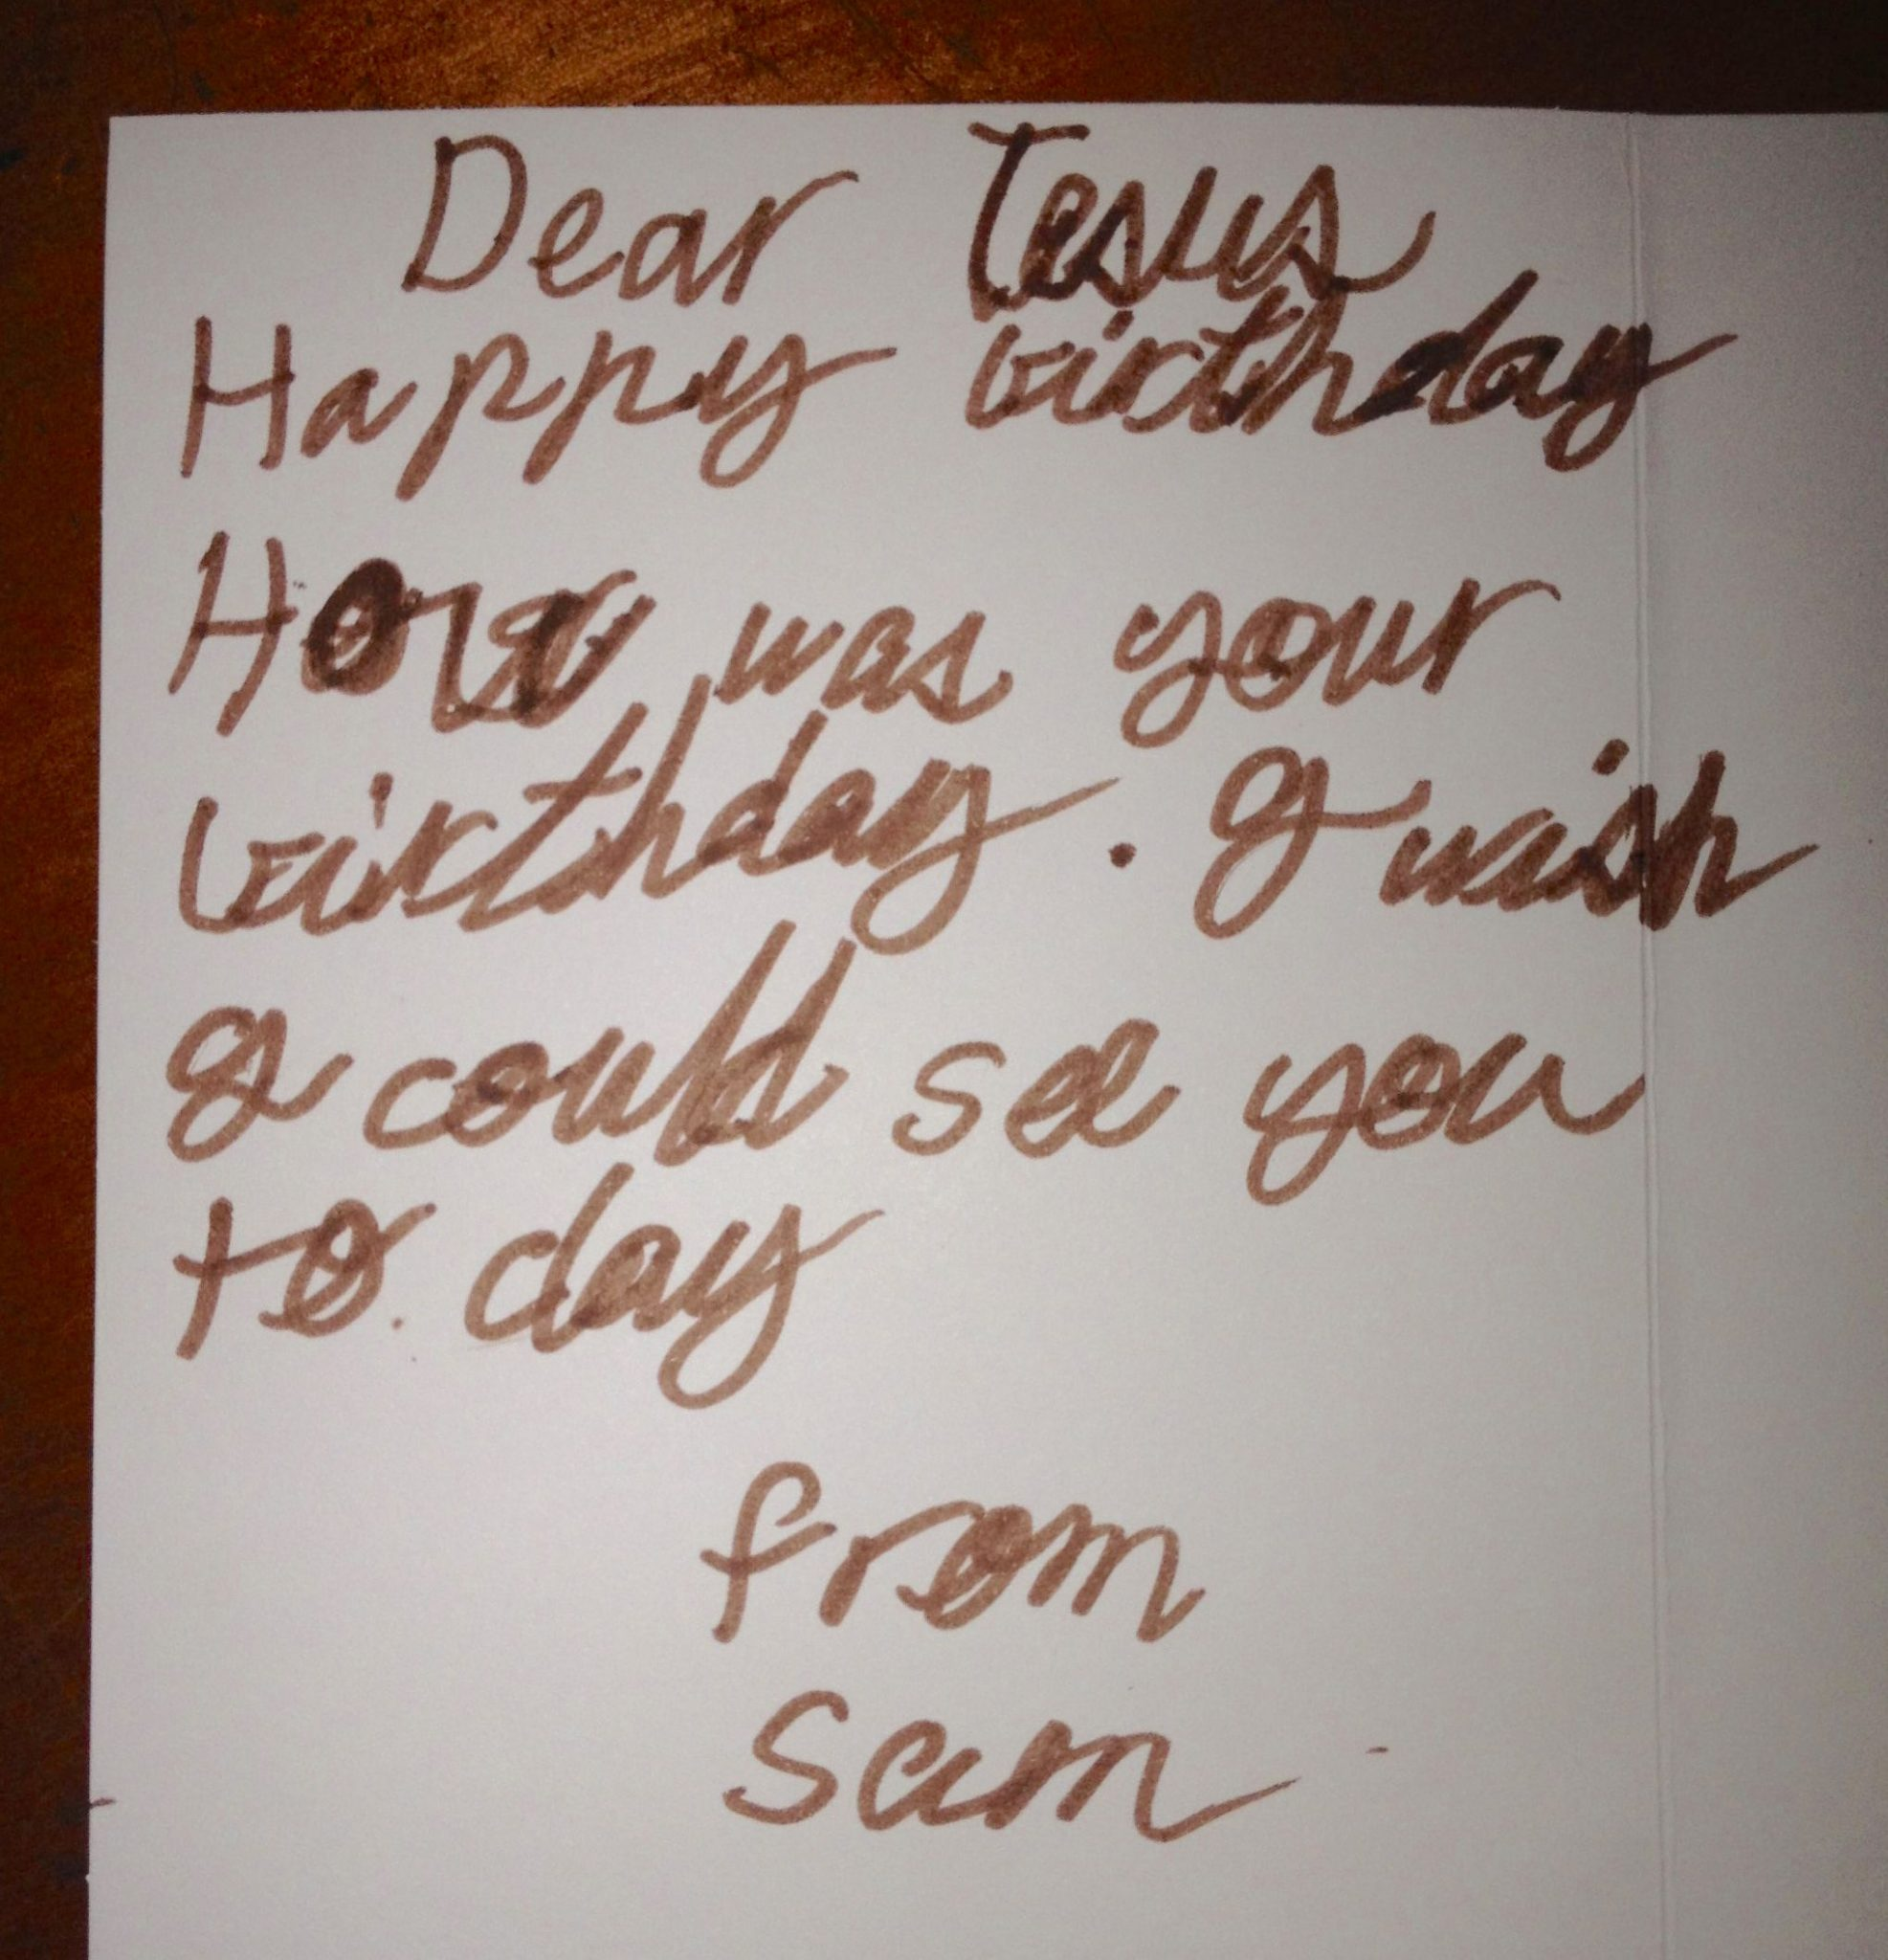 146. This is the inside of the card Sam made for Jesus. This is a billion times better than Shakespeare, Keats, or the New York Times Best Seller List anyday